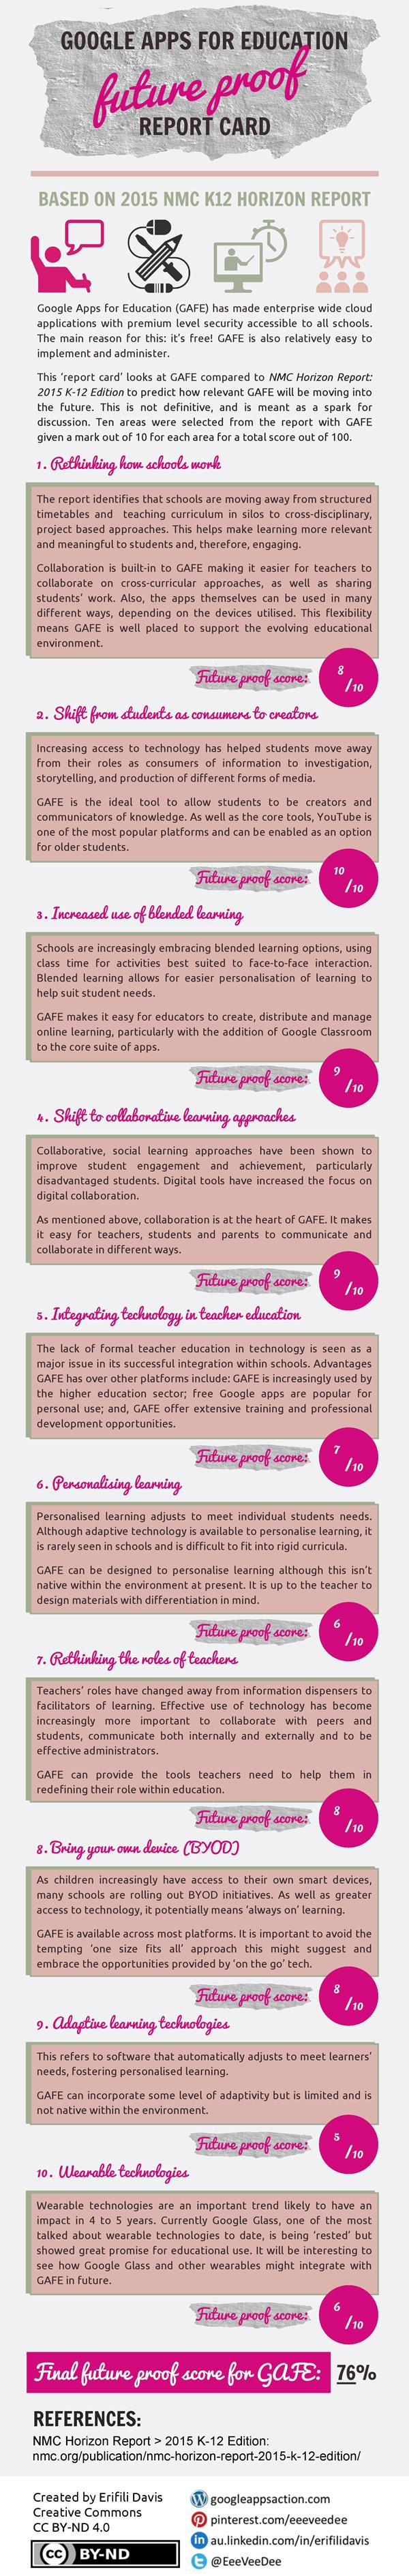 A visual report card comparing GAFE future proof characteristics